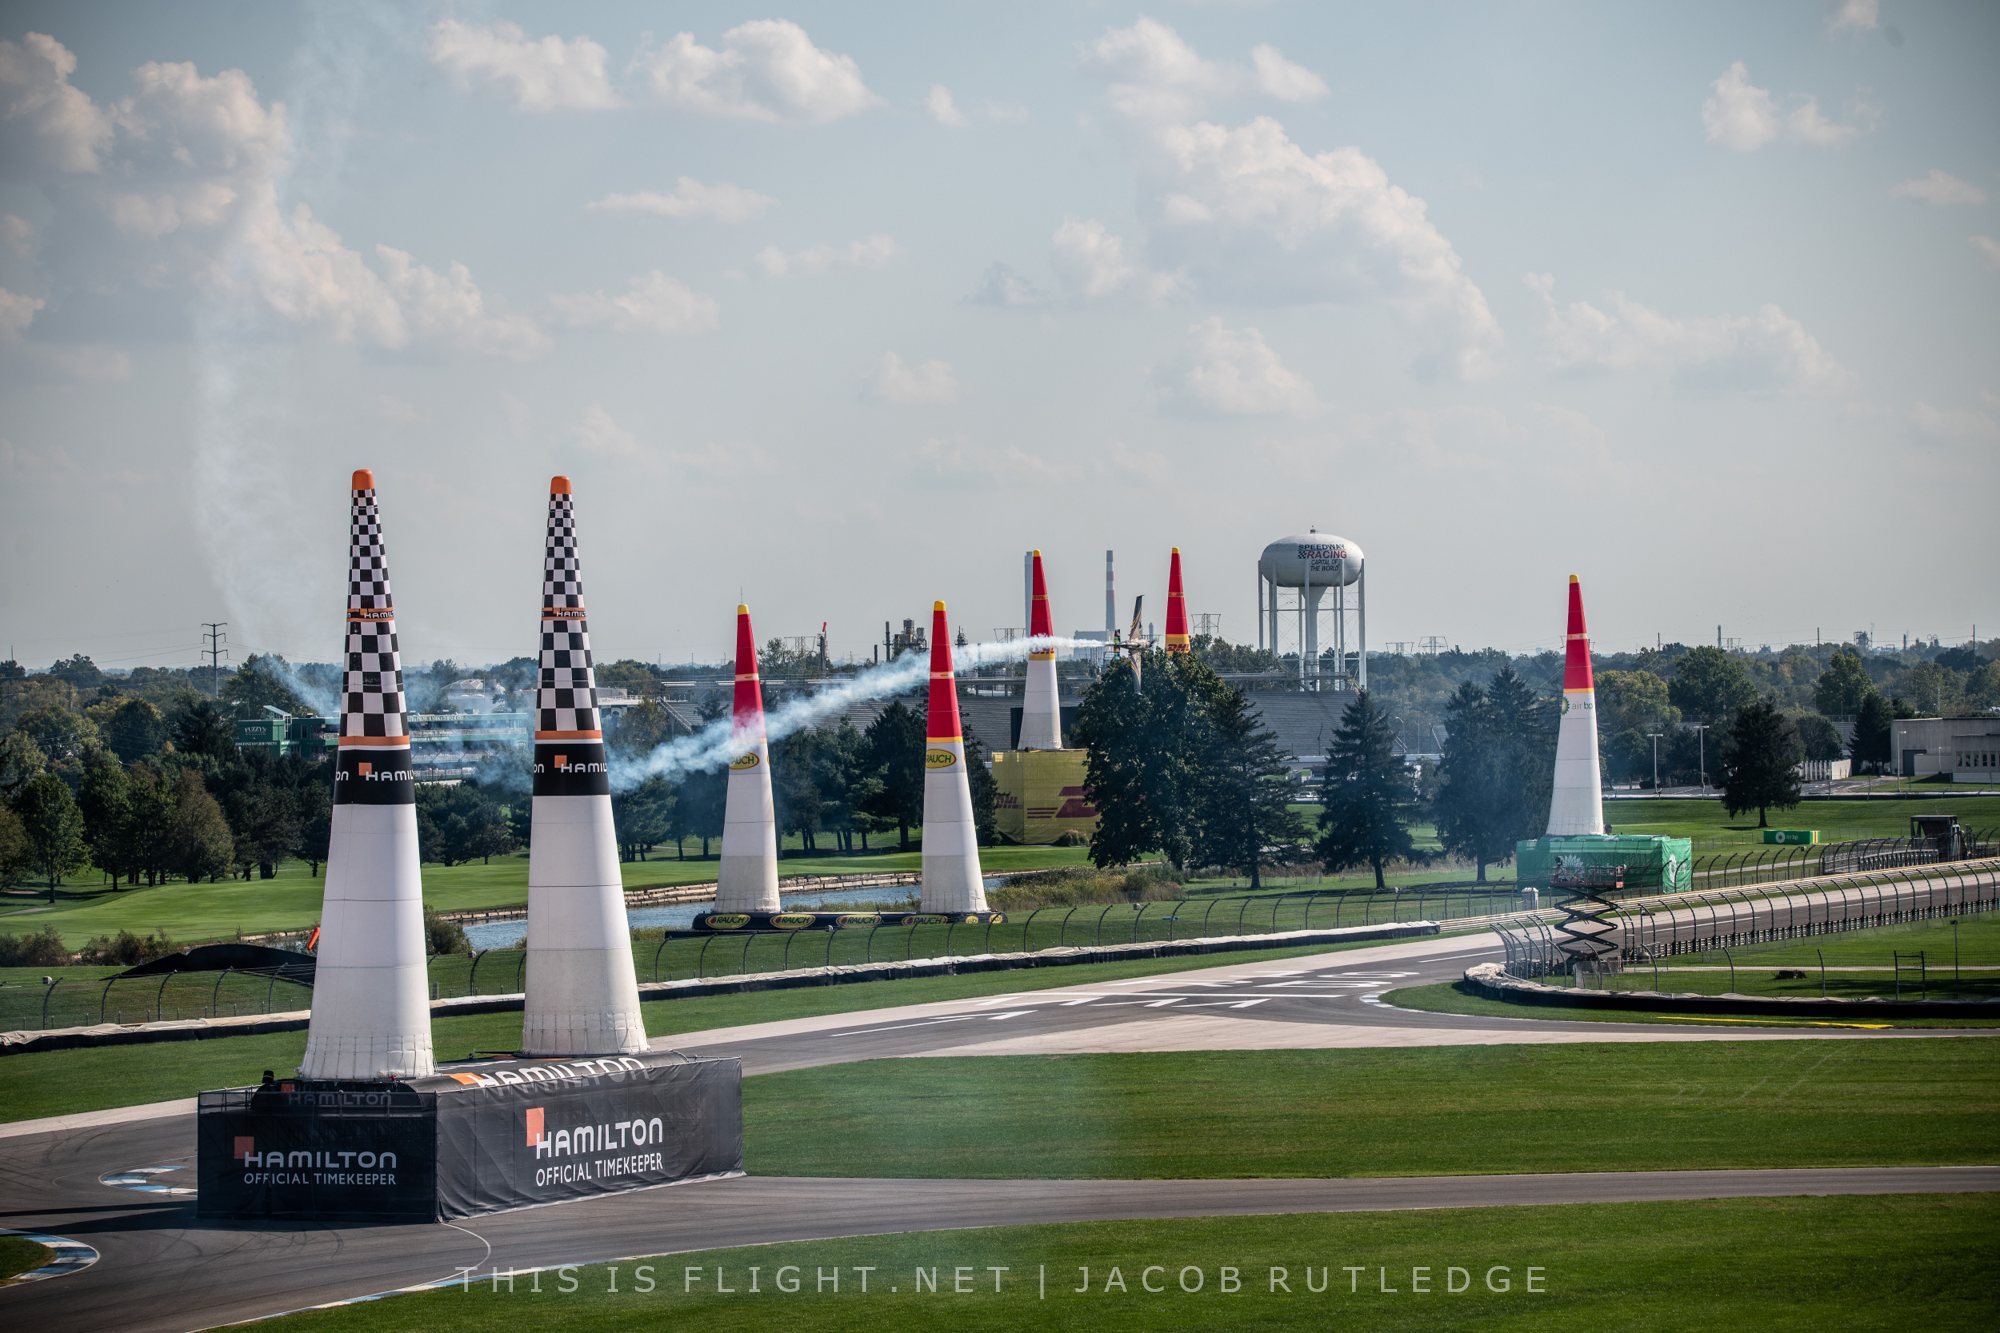 More details on Red Bull Air Race successor series, due to start